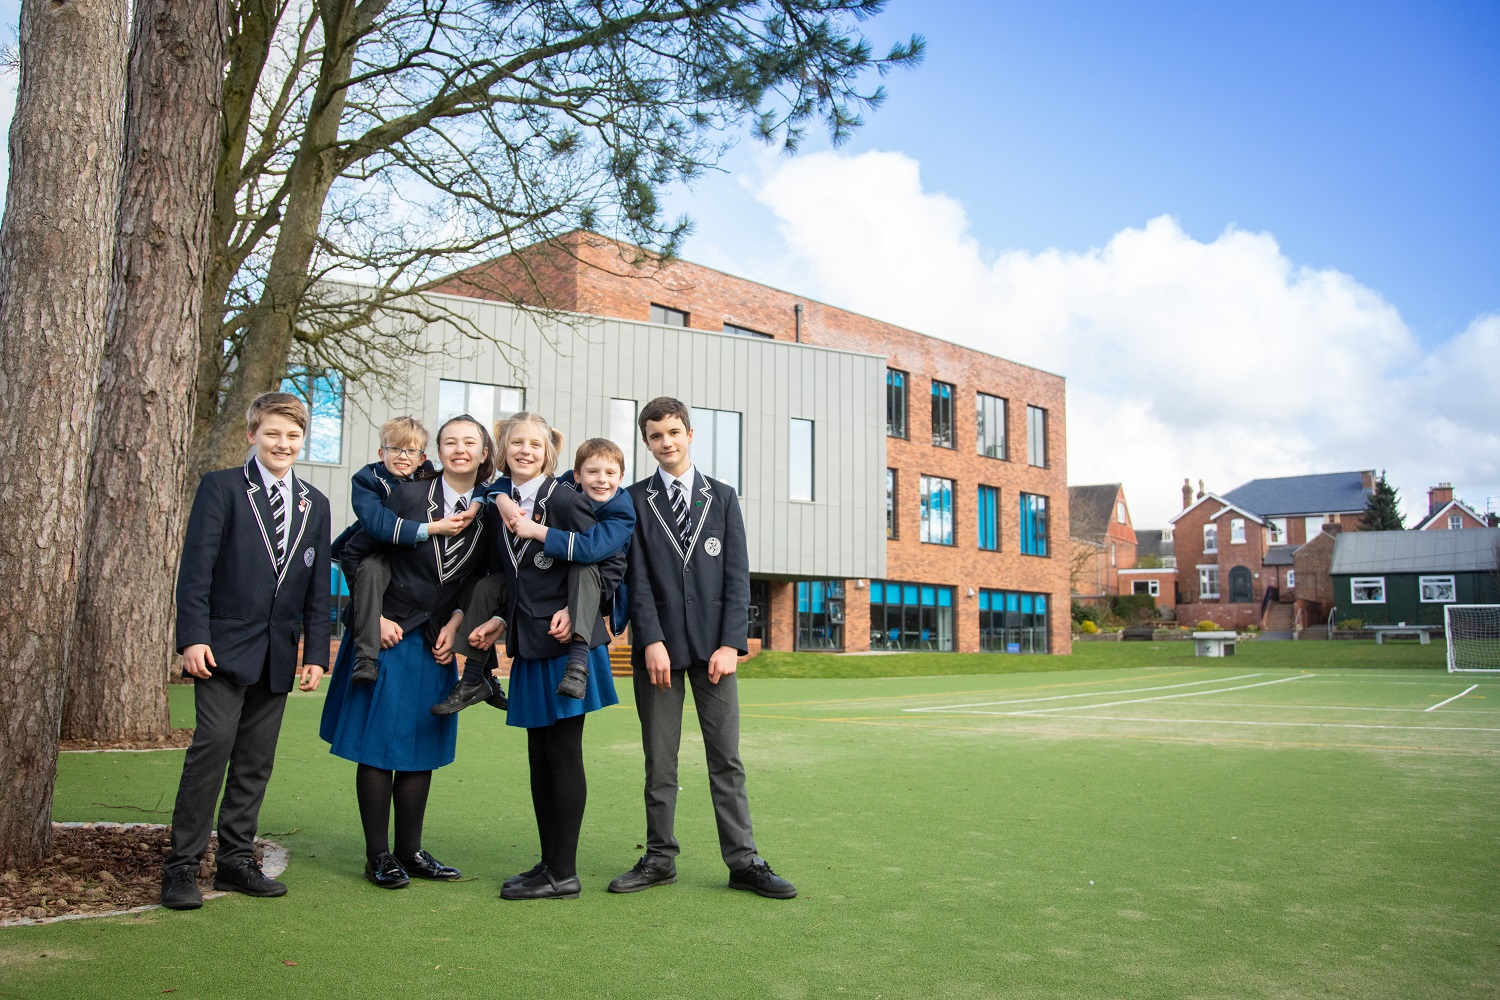 St Dominic's Priory School open days